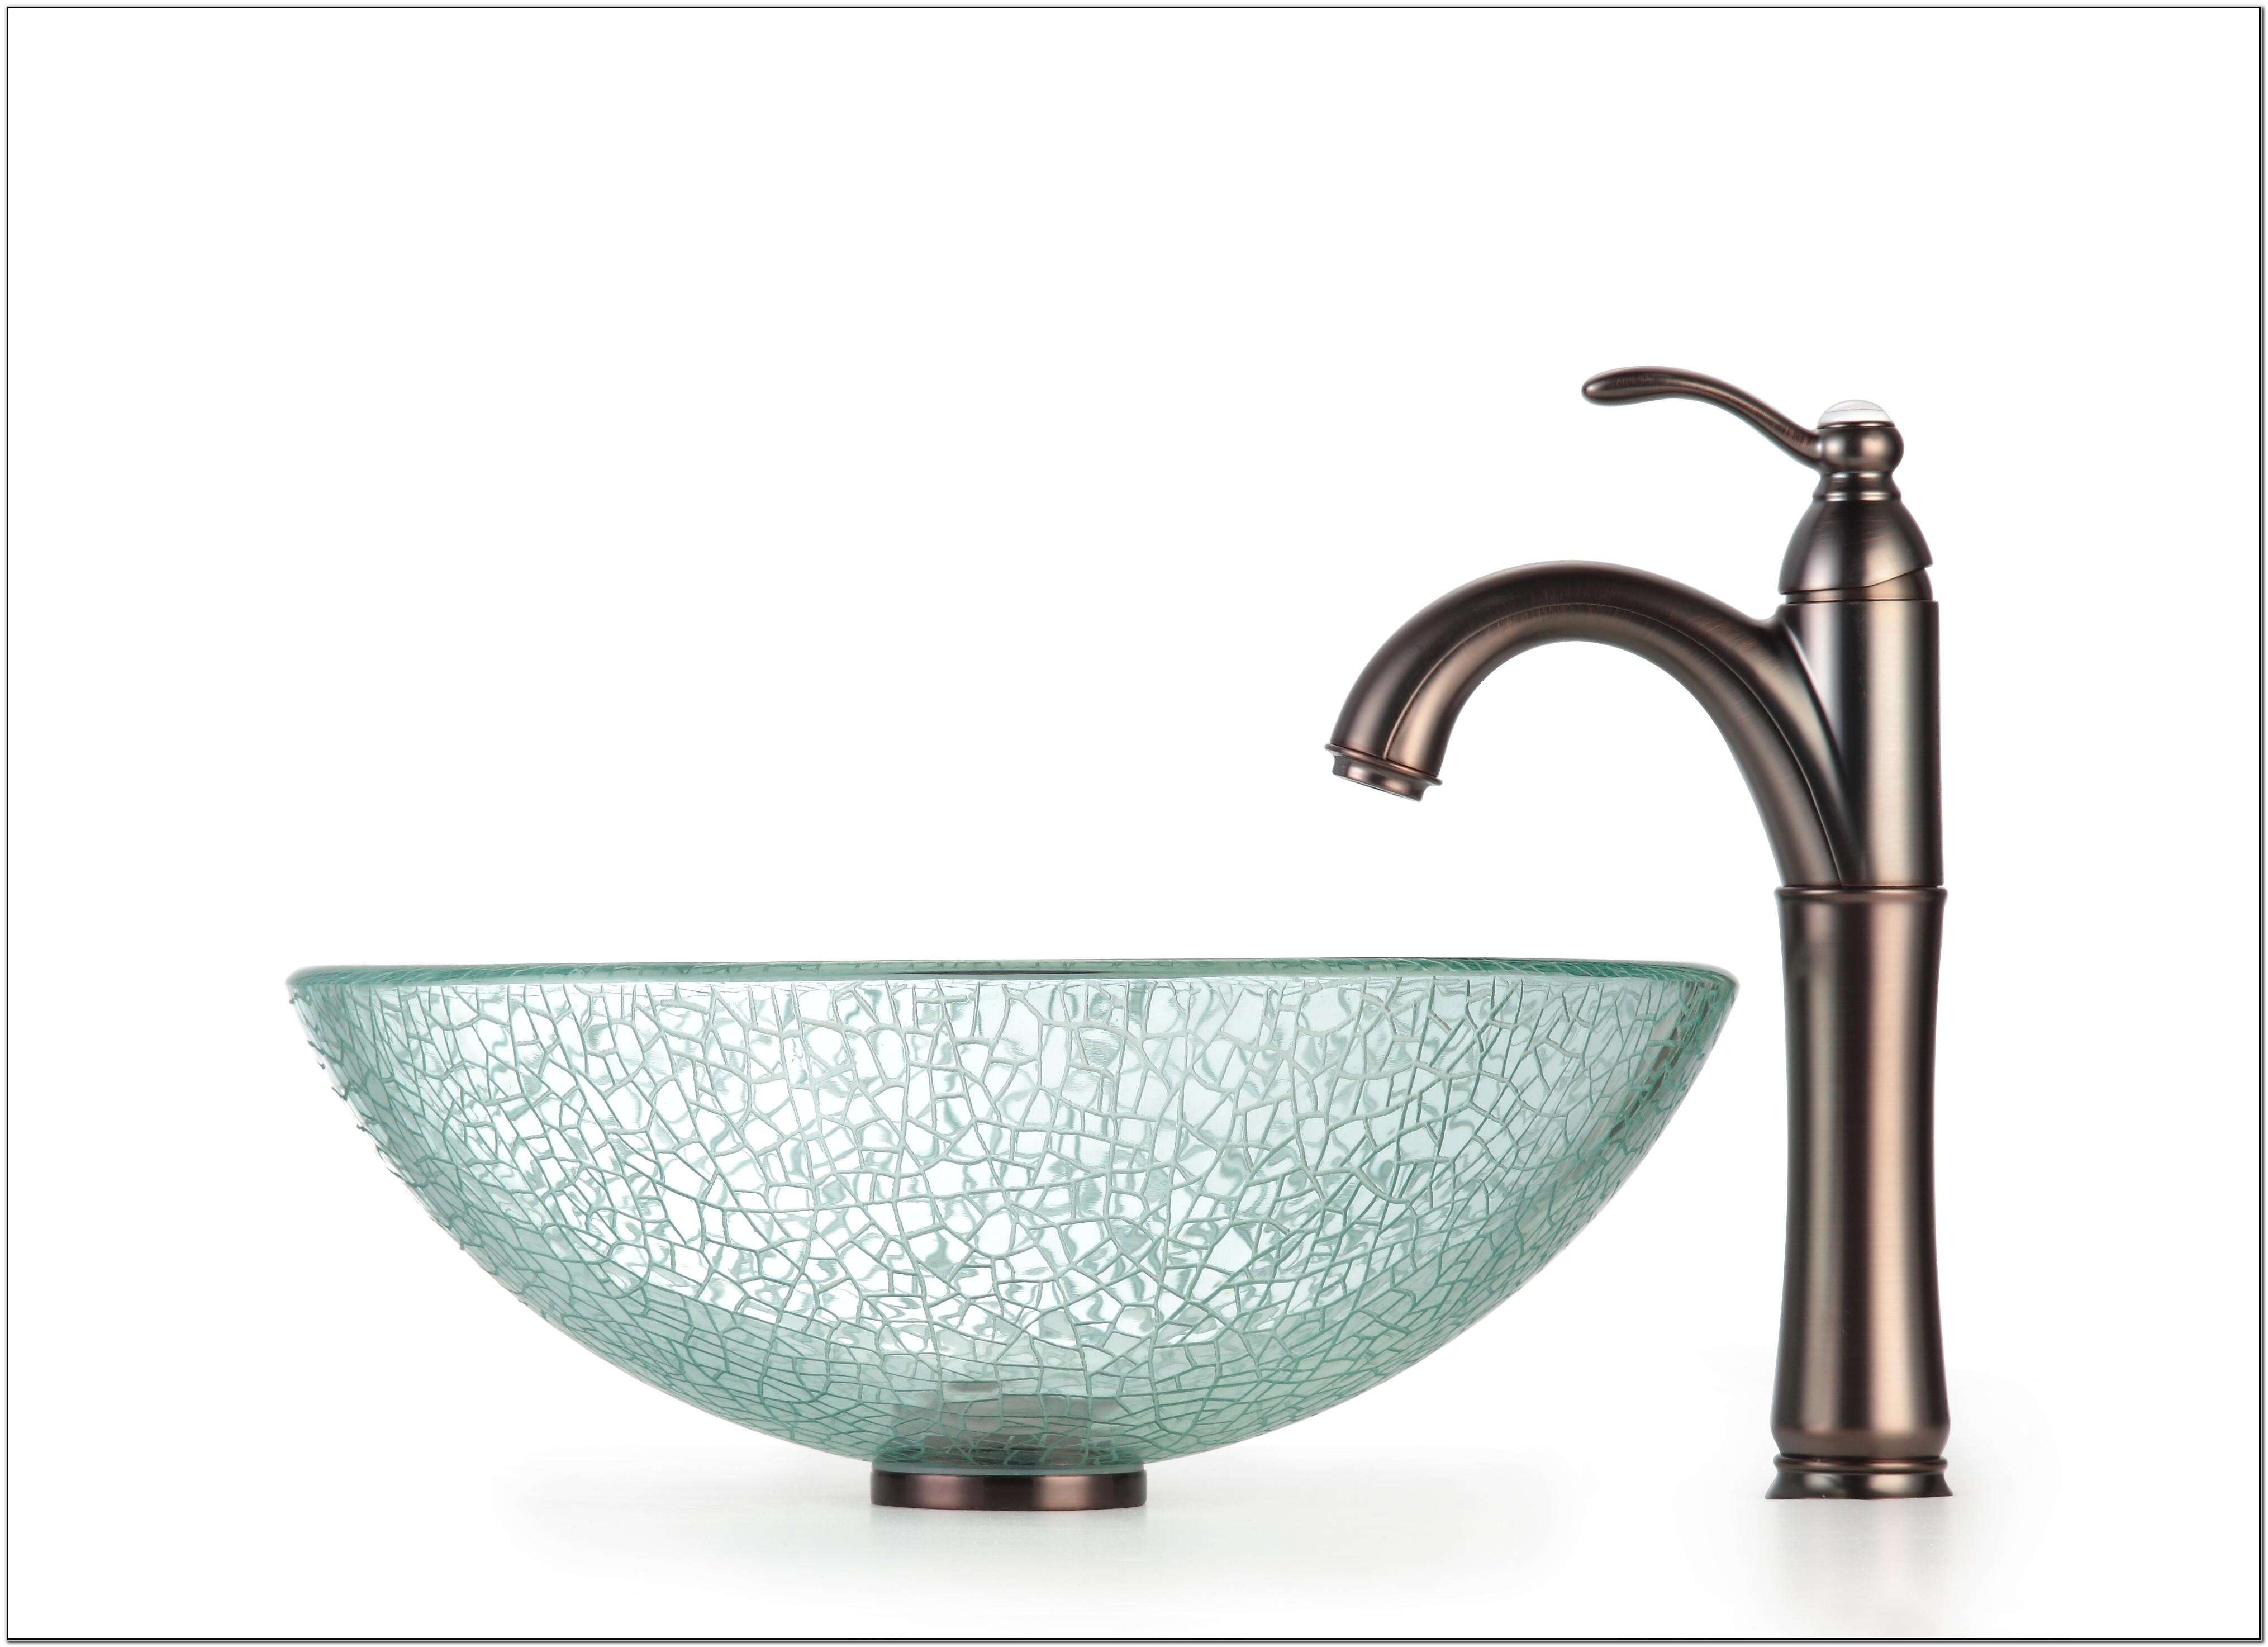 Ideas, vessel sinks and faucet combo vessel sinks and faucet combo kraus vessel sink faucet combo sink and faucets home 4059 x 2947  .